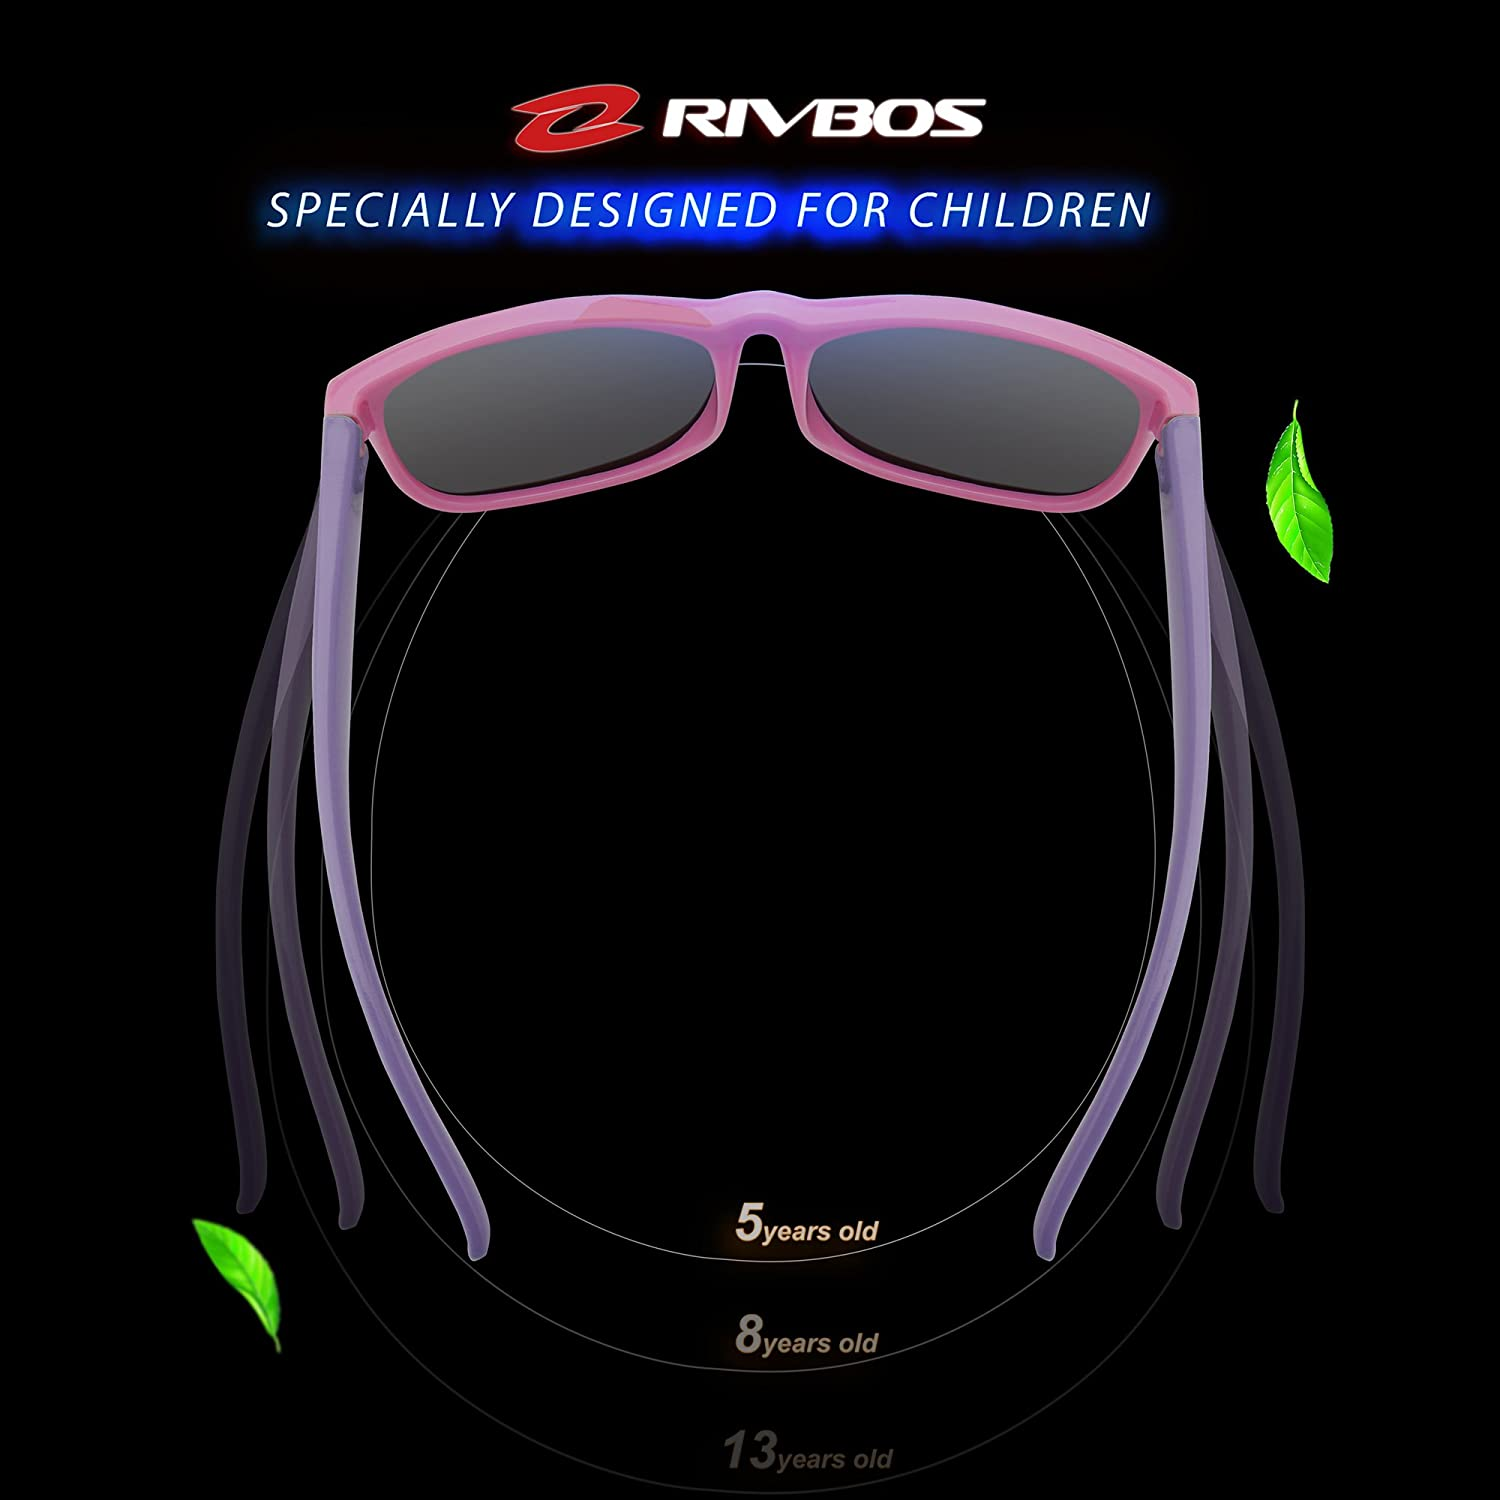 RIVBOS Rubber Kids Polarized Sunglasses for Boys Girls and Children Age 3-10 RBK023